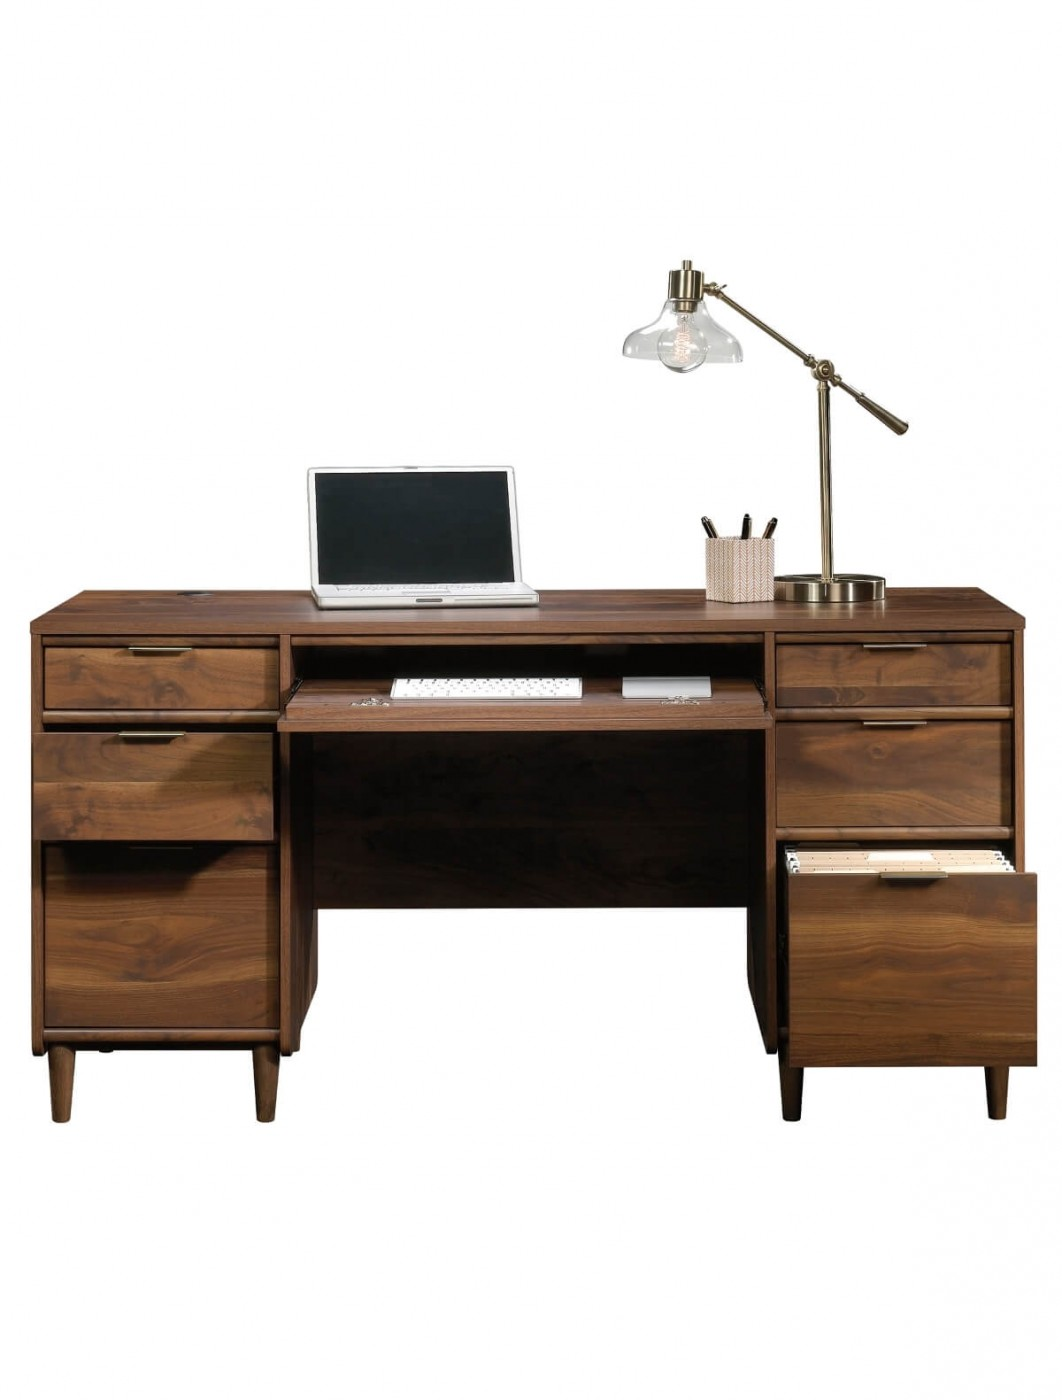 Home office desks clifton place executive walnut office desk 5421113 enlarged view